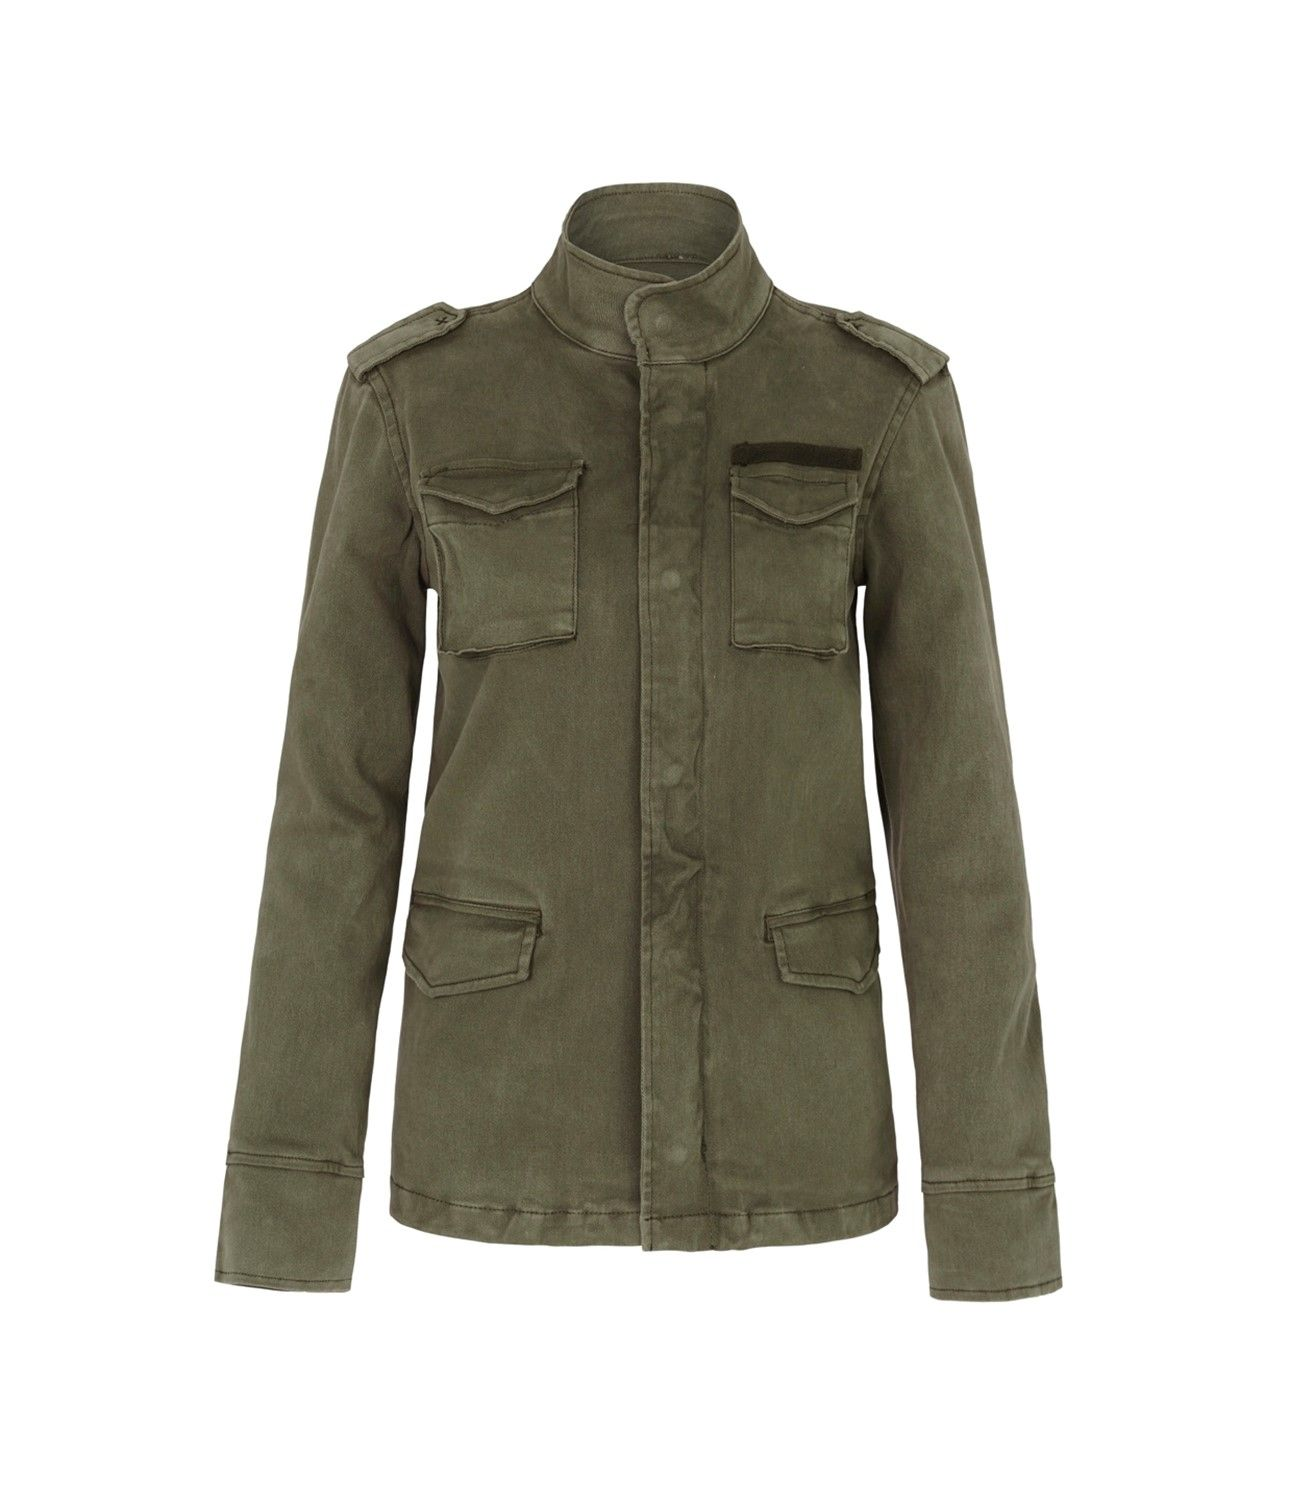 ARMY JACKET IN KHAKI Available at MODE SPORTIF